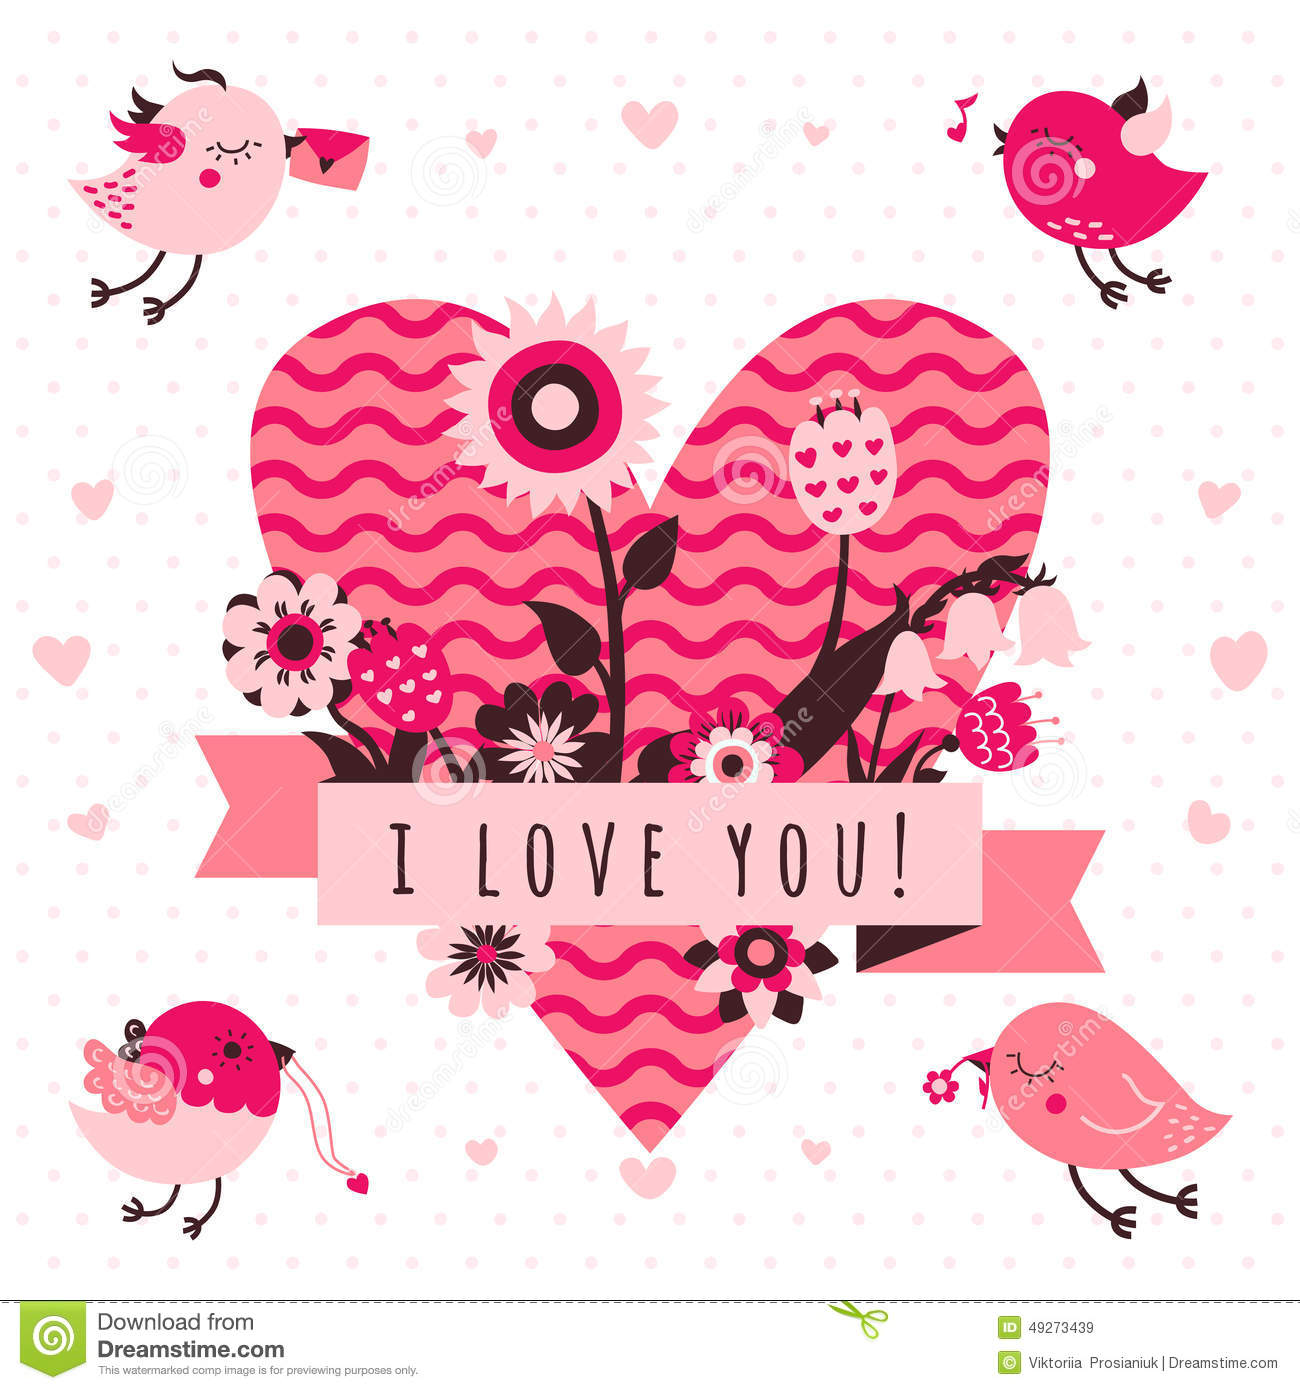 08de47f45dd8 I love you vector card (background) in light and dark pink and brown colors